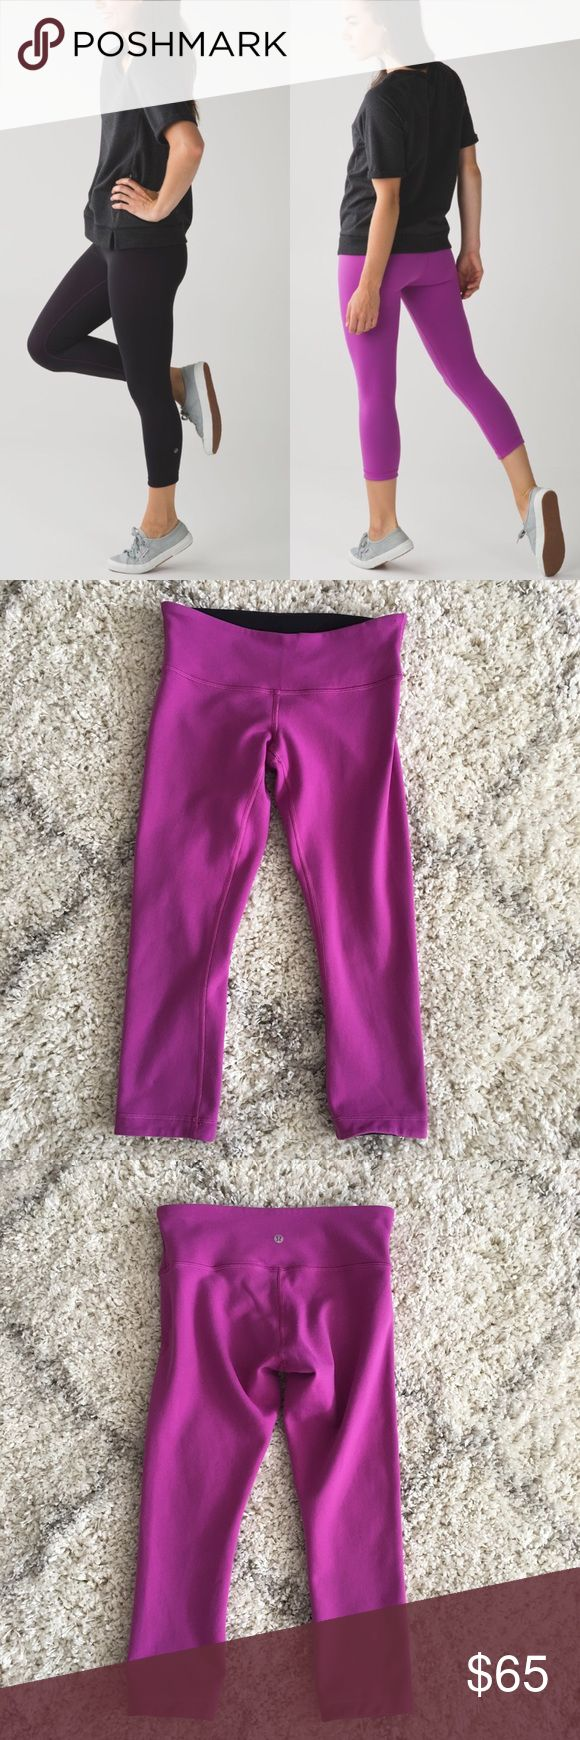 🍋 Lululemon Wunder Under Crop– Reversible Lightly worn reversible wunder under crop – colors are black and I believe ultra violet. Very small pinhole sized hole on the violet side waistband – not very noticeable (see last photo). No stains, tears, or other holes. Super minimal pilling on the black side gusset & violet waistband - rest of pants still very smooth. Overall lightly worn and washed a few times – great, pre-owned condition. Bundle & save 💰! Sorry - 🚫 trades! lululemon athletica…